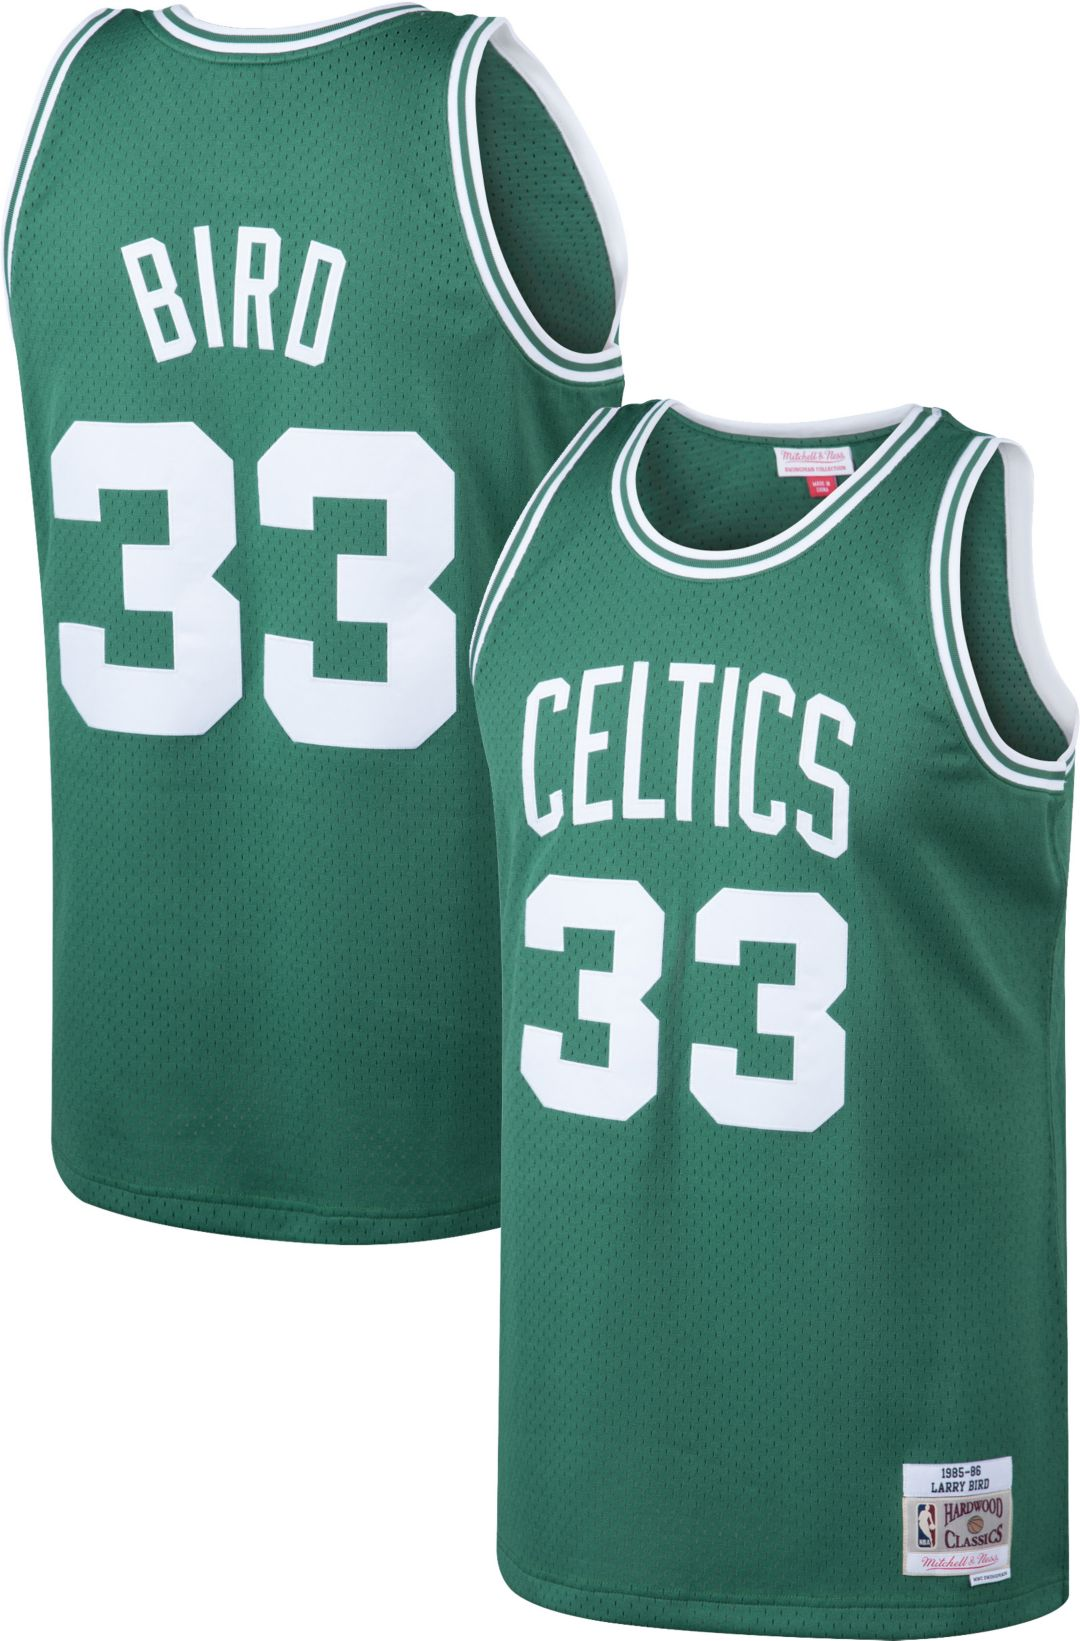 buy online ea6a7 7e382 Mitchell & Ness Men's Boston Celtics Larry Bird #33 Swingman Jersey